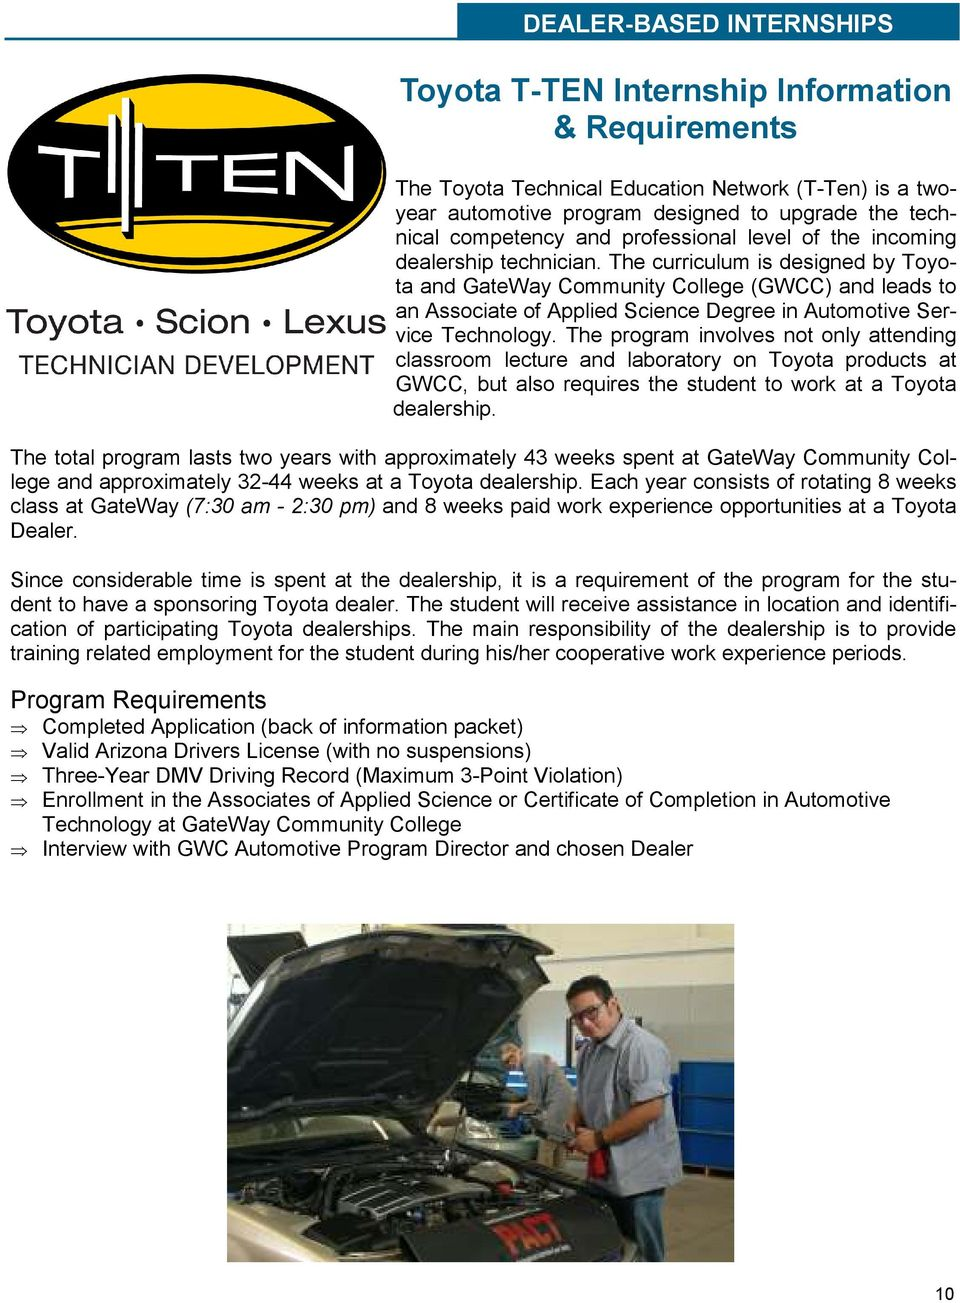 The curriculum is designed by Toyota and GateWay Community College (GWCC) and leads to an Associate of Applied Science Degree in Automotive Service Technology.